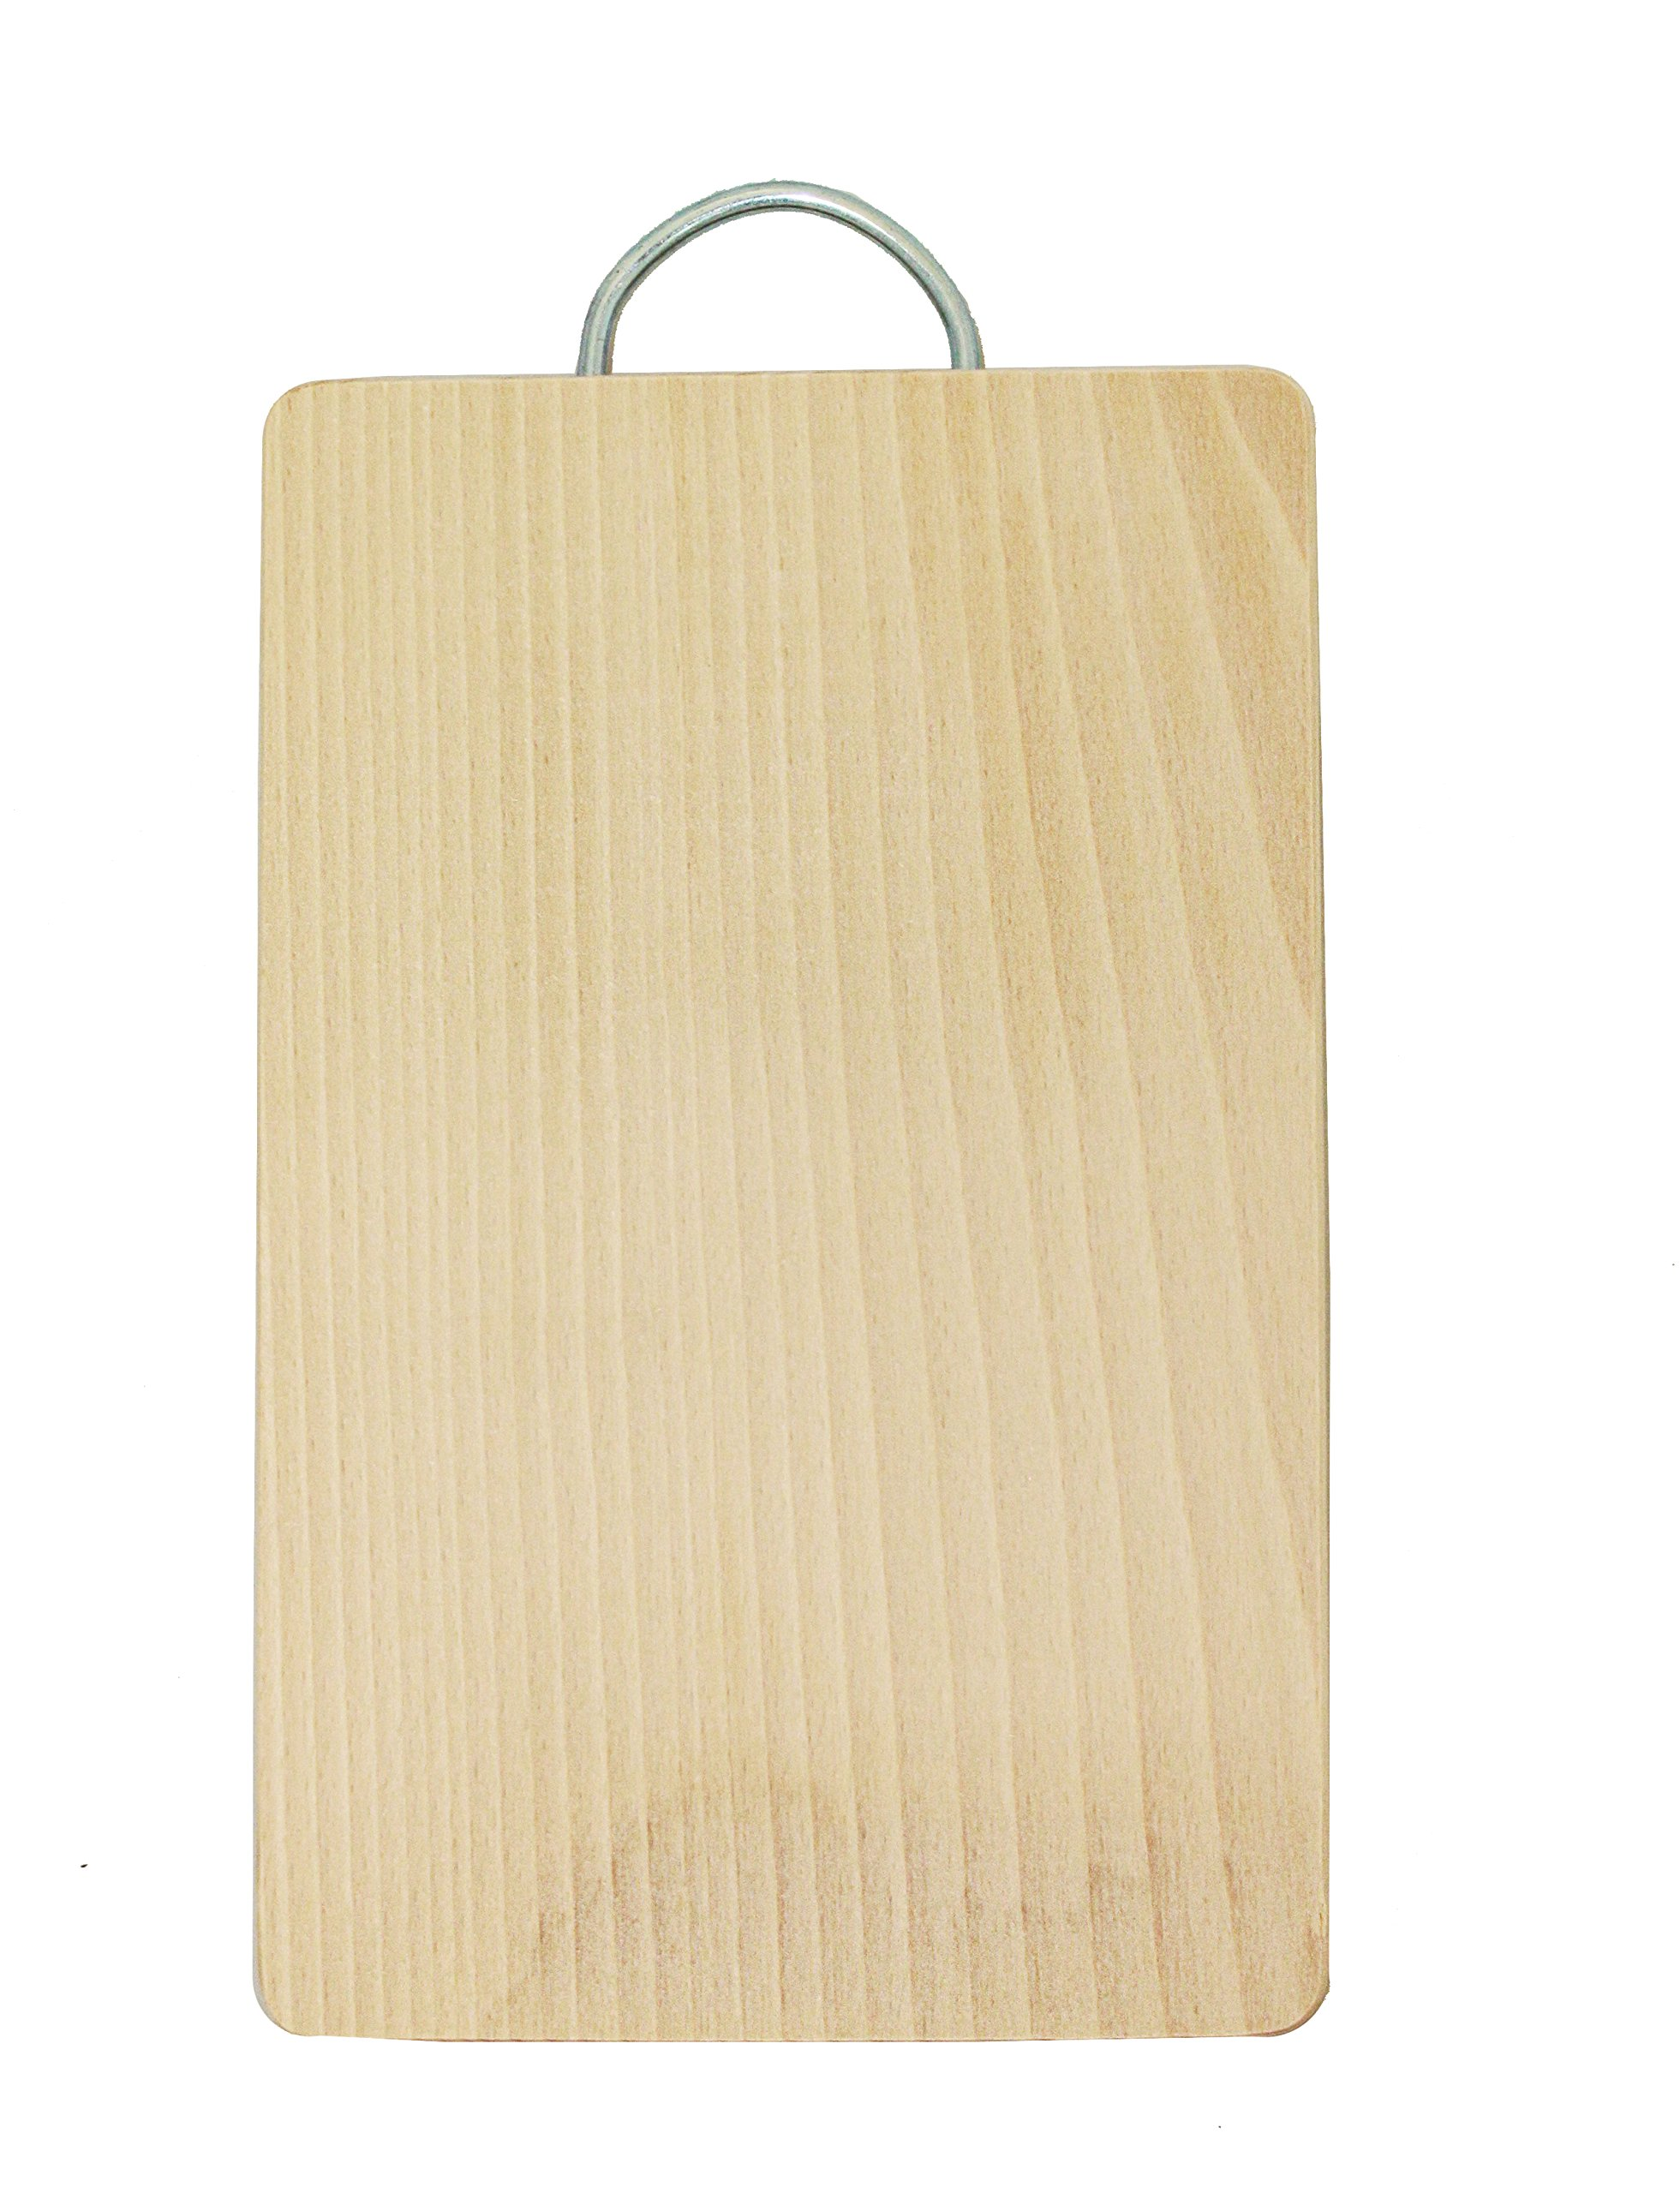 Practic Chopping Board With Metal Handle